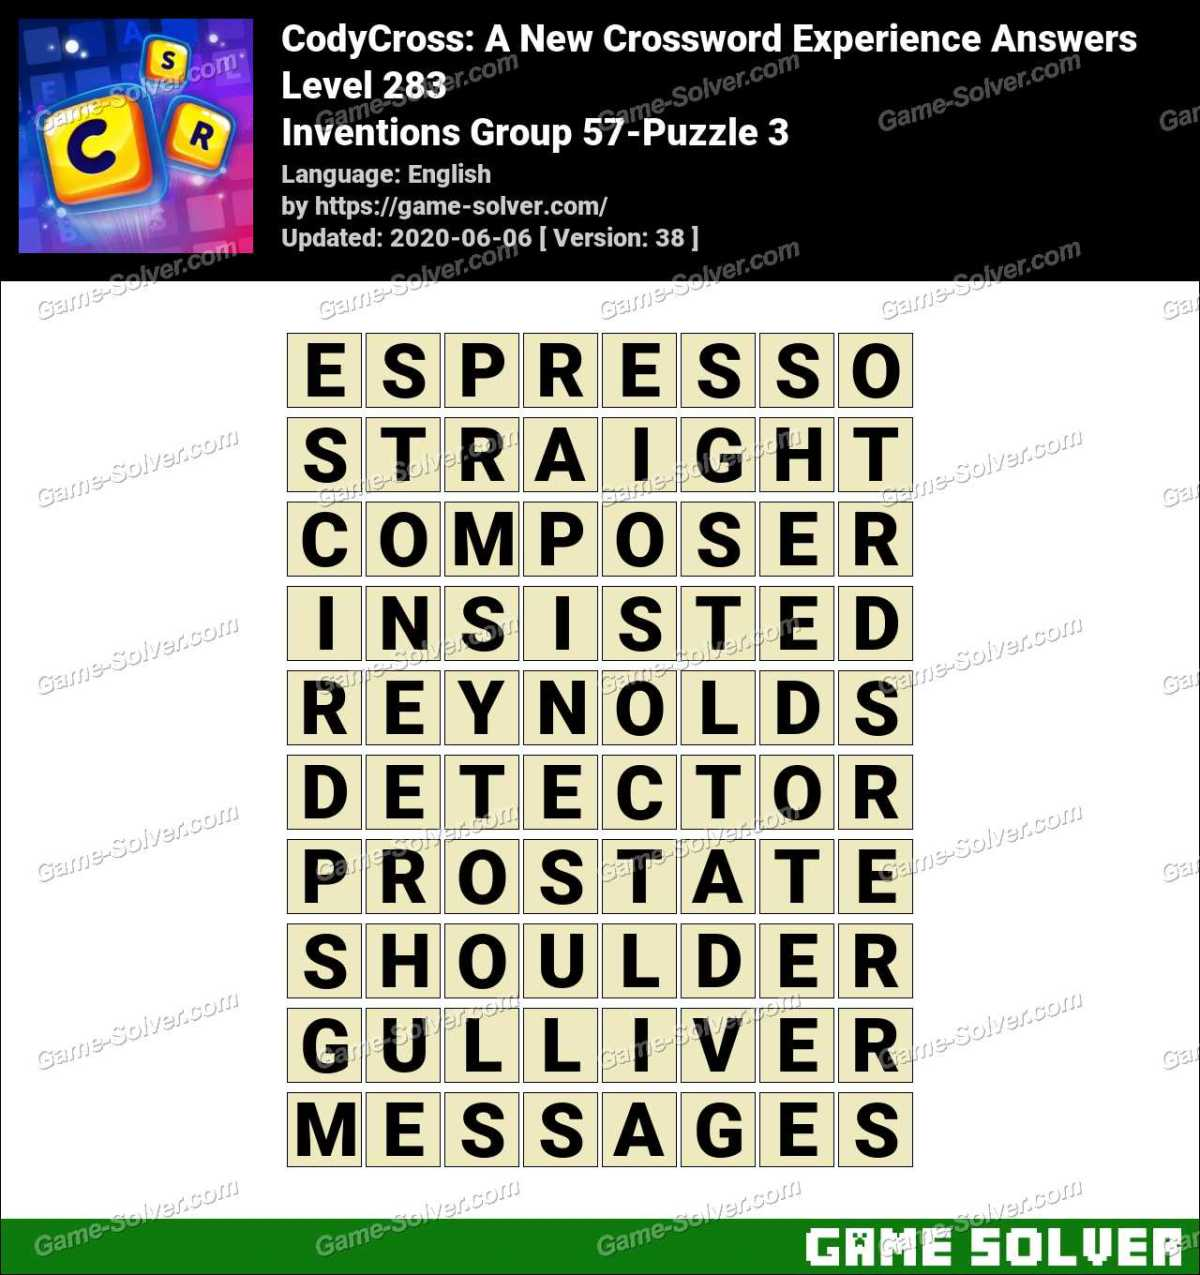 CodyCross Inventions Group 57-Puzzle 3 Answers